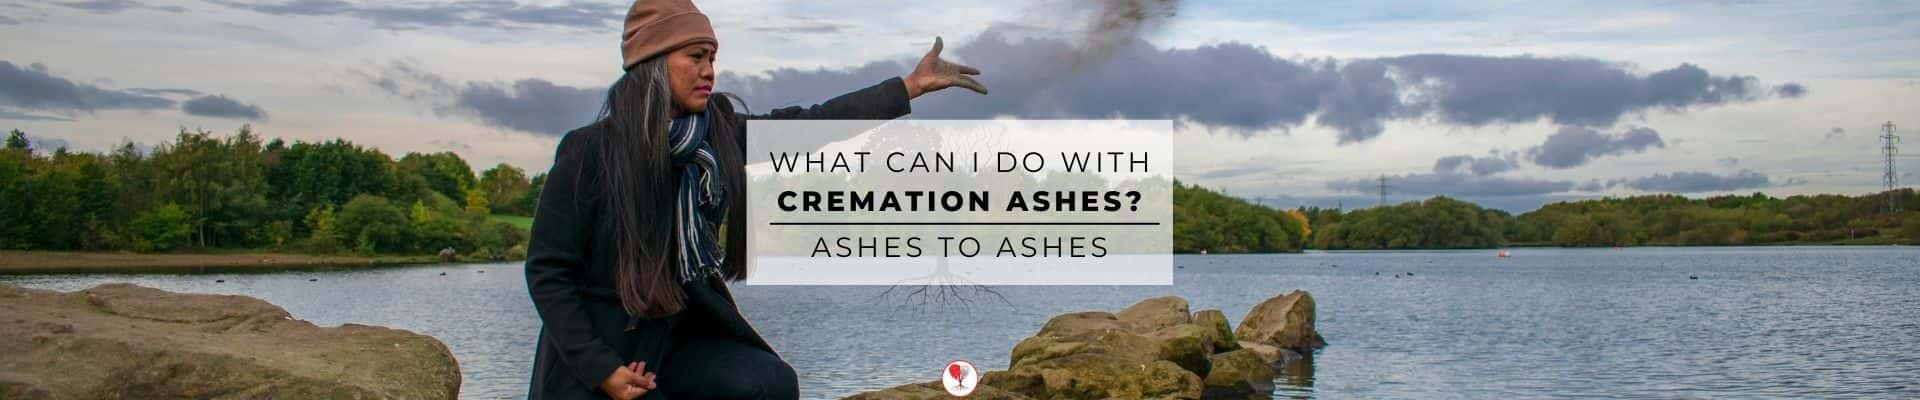 What can I do with cremation ashes